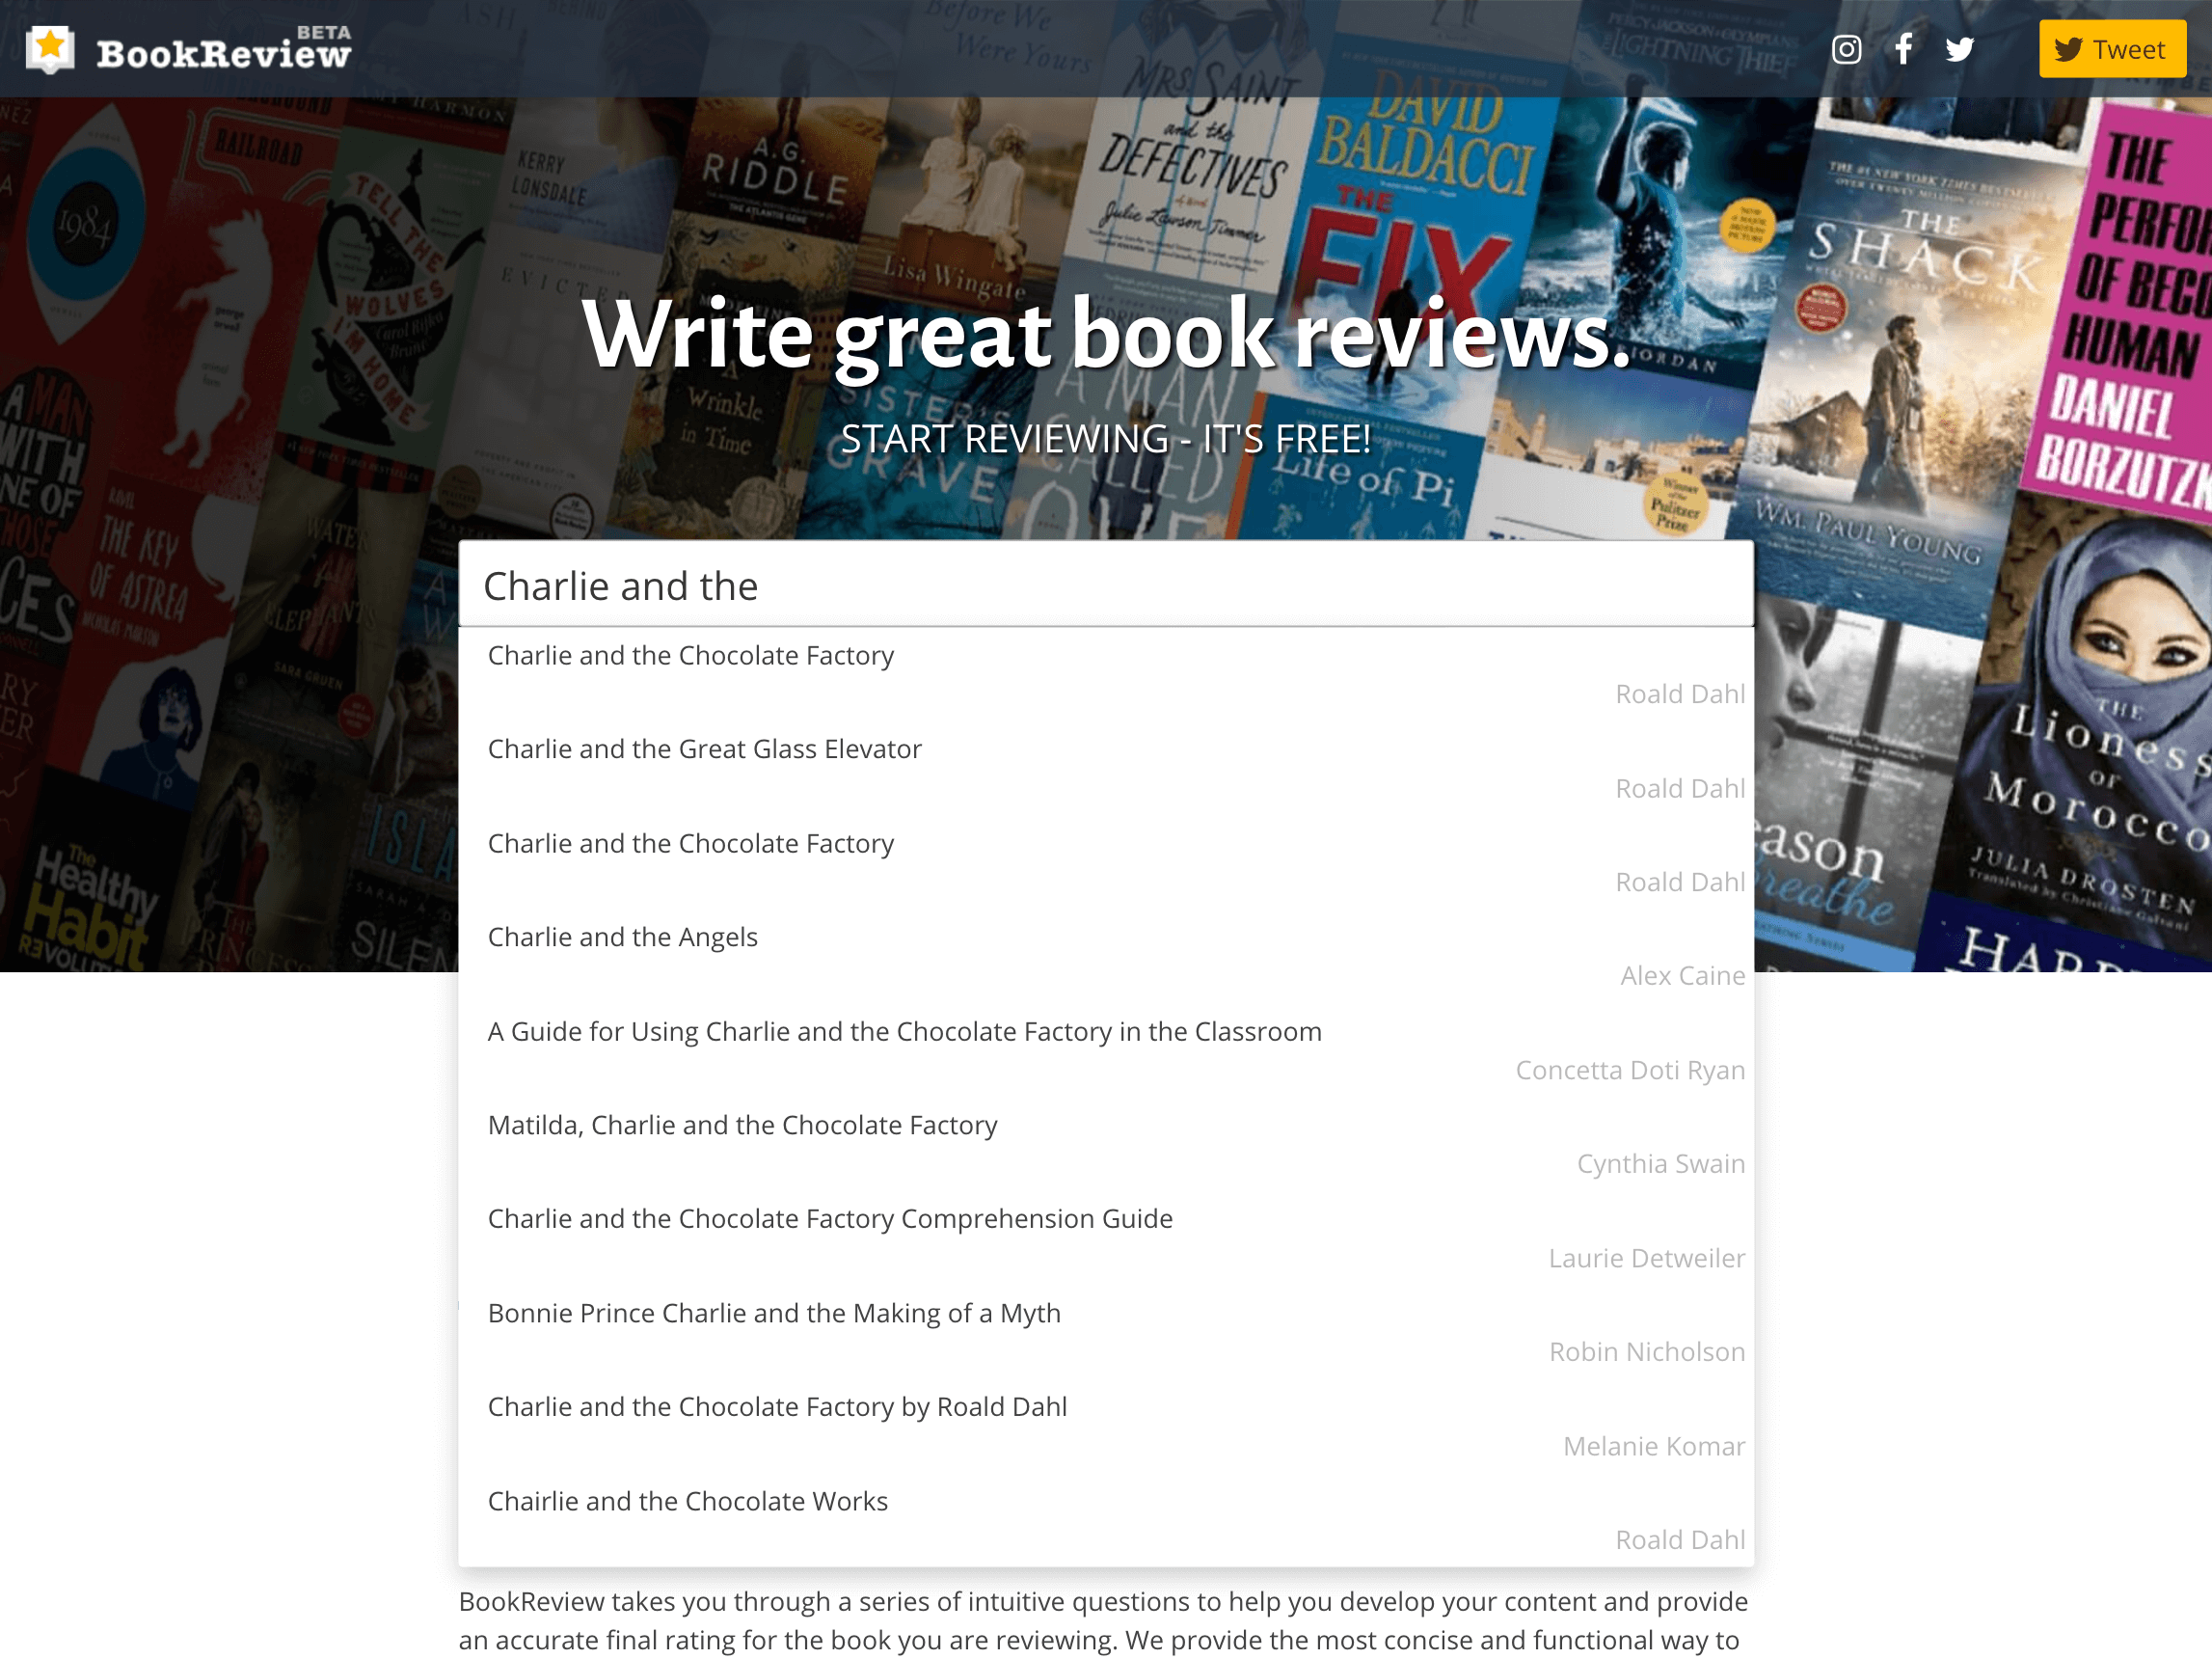 BookReview home page